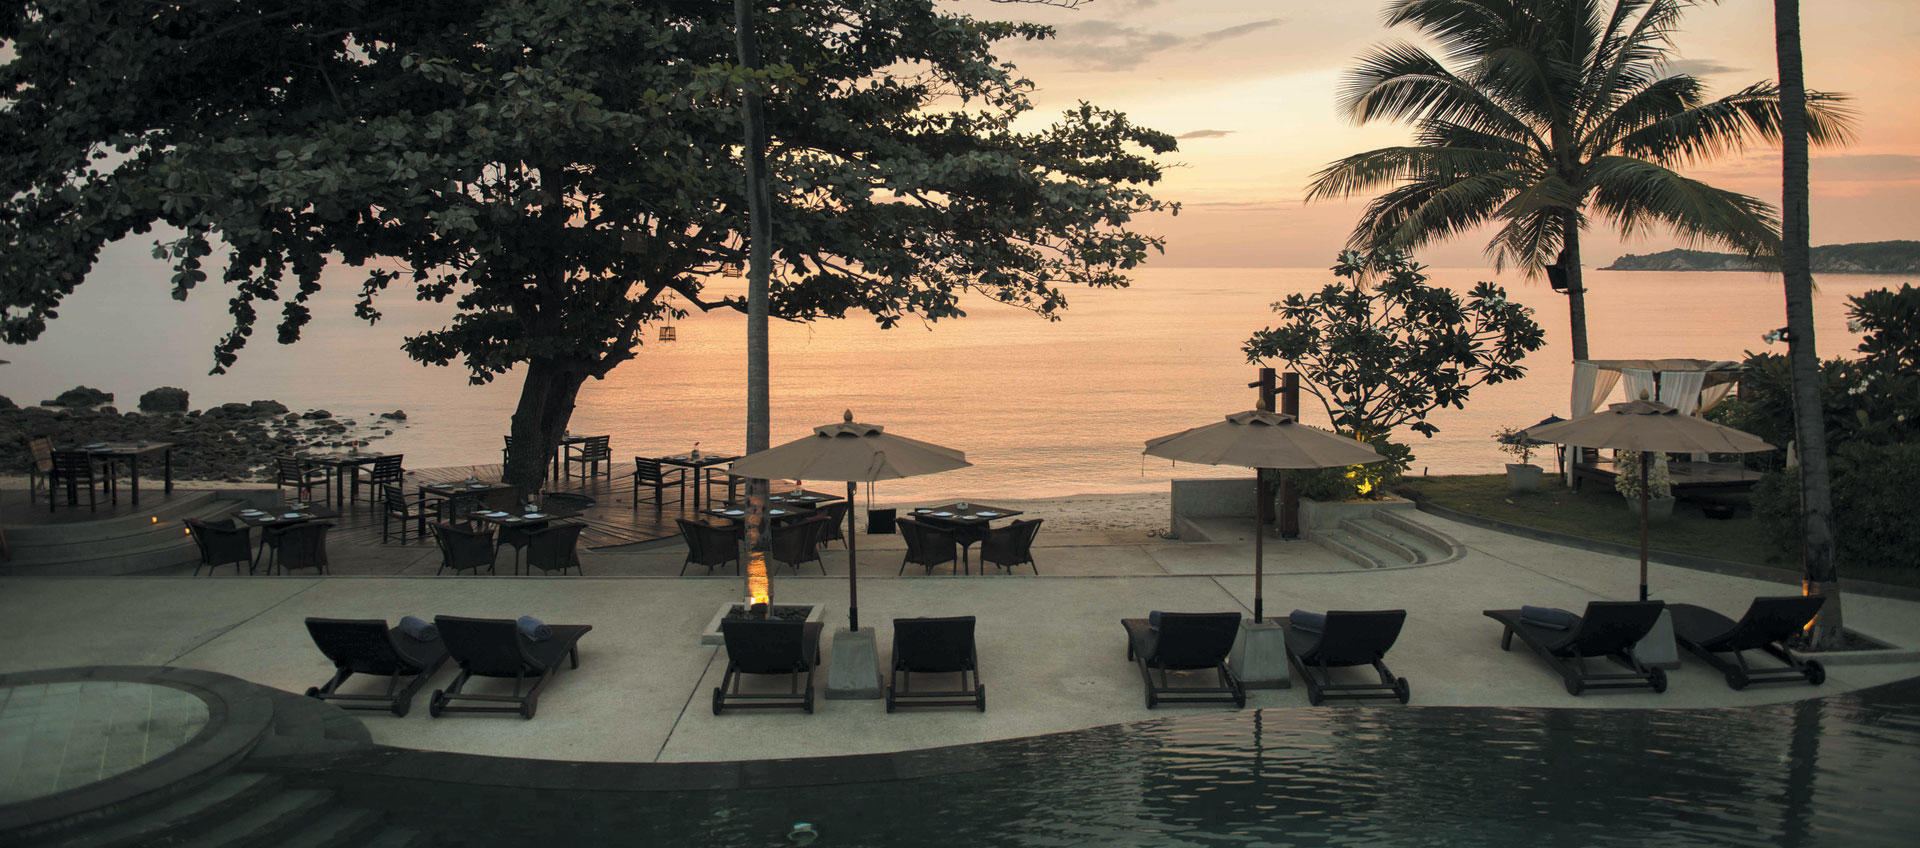 Outrigger koh samui beach resort gha